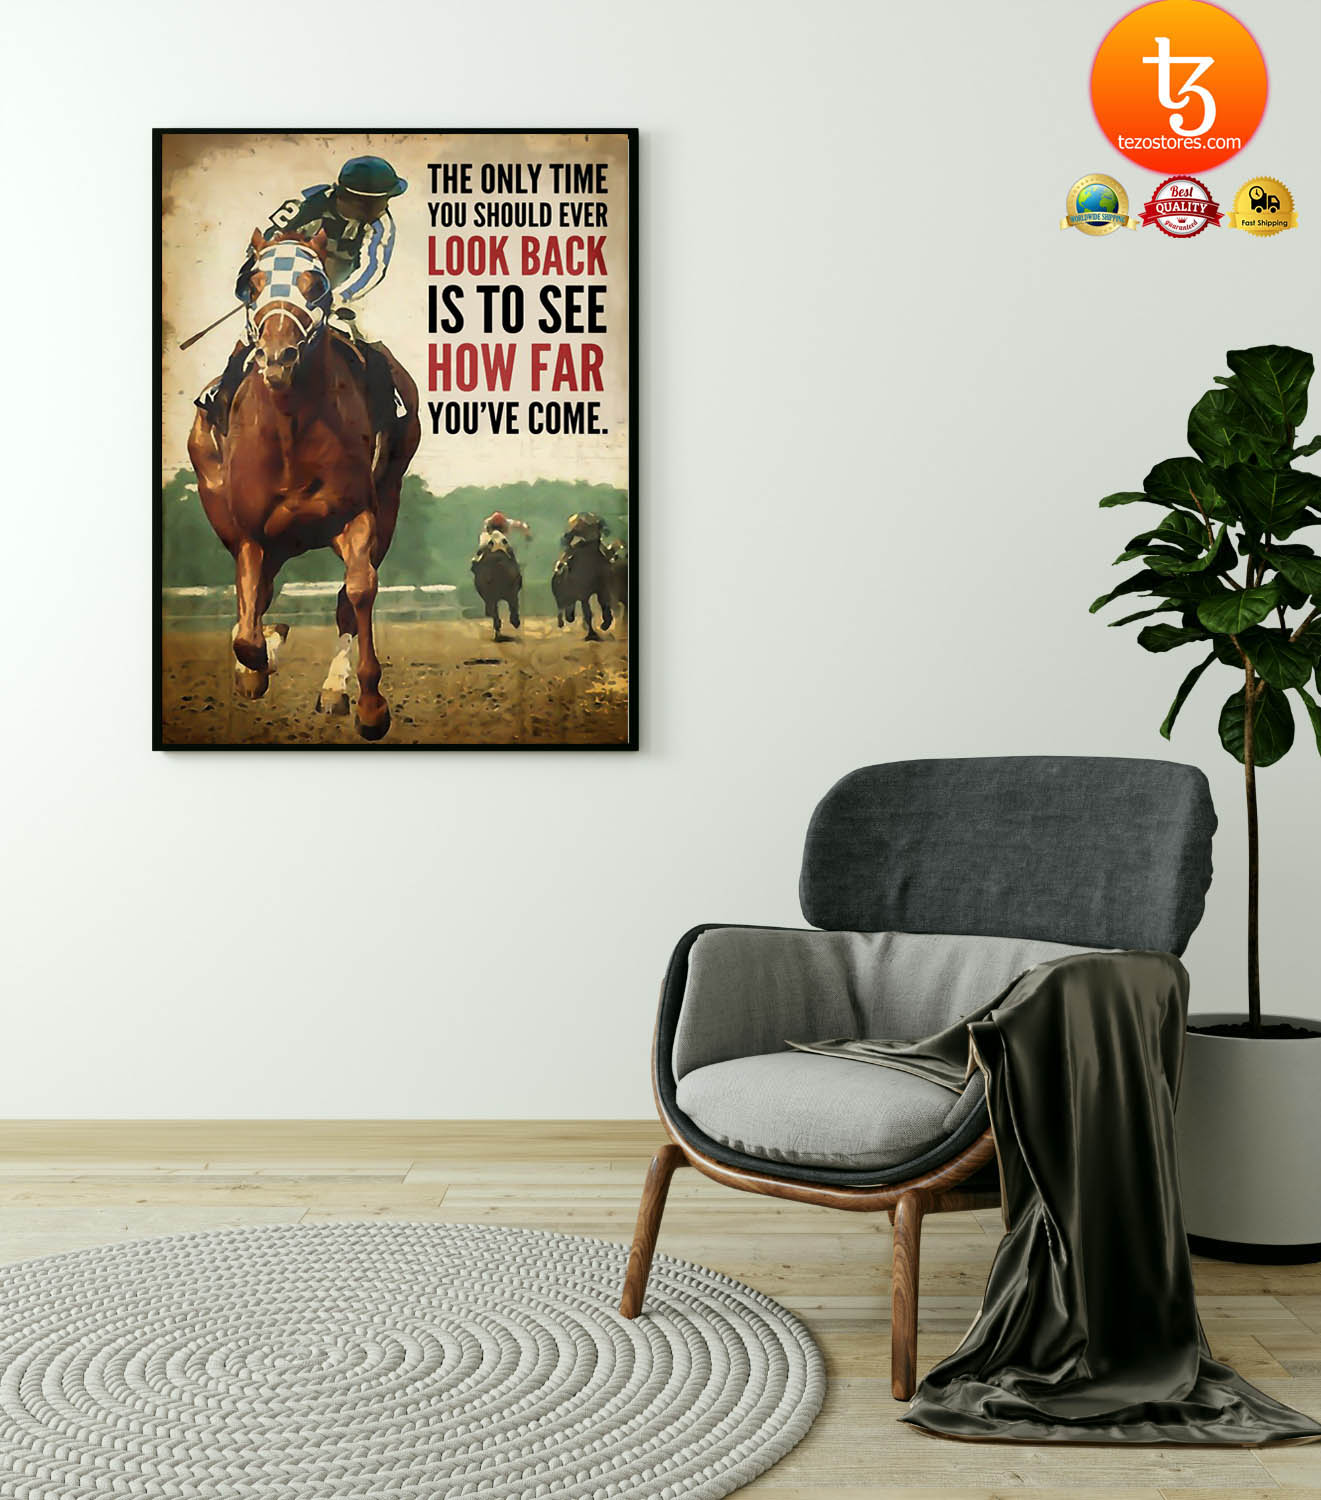 Racing horse The only time you should ever look back is to see how far youve come poster 25